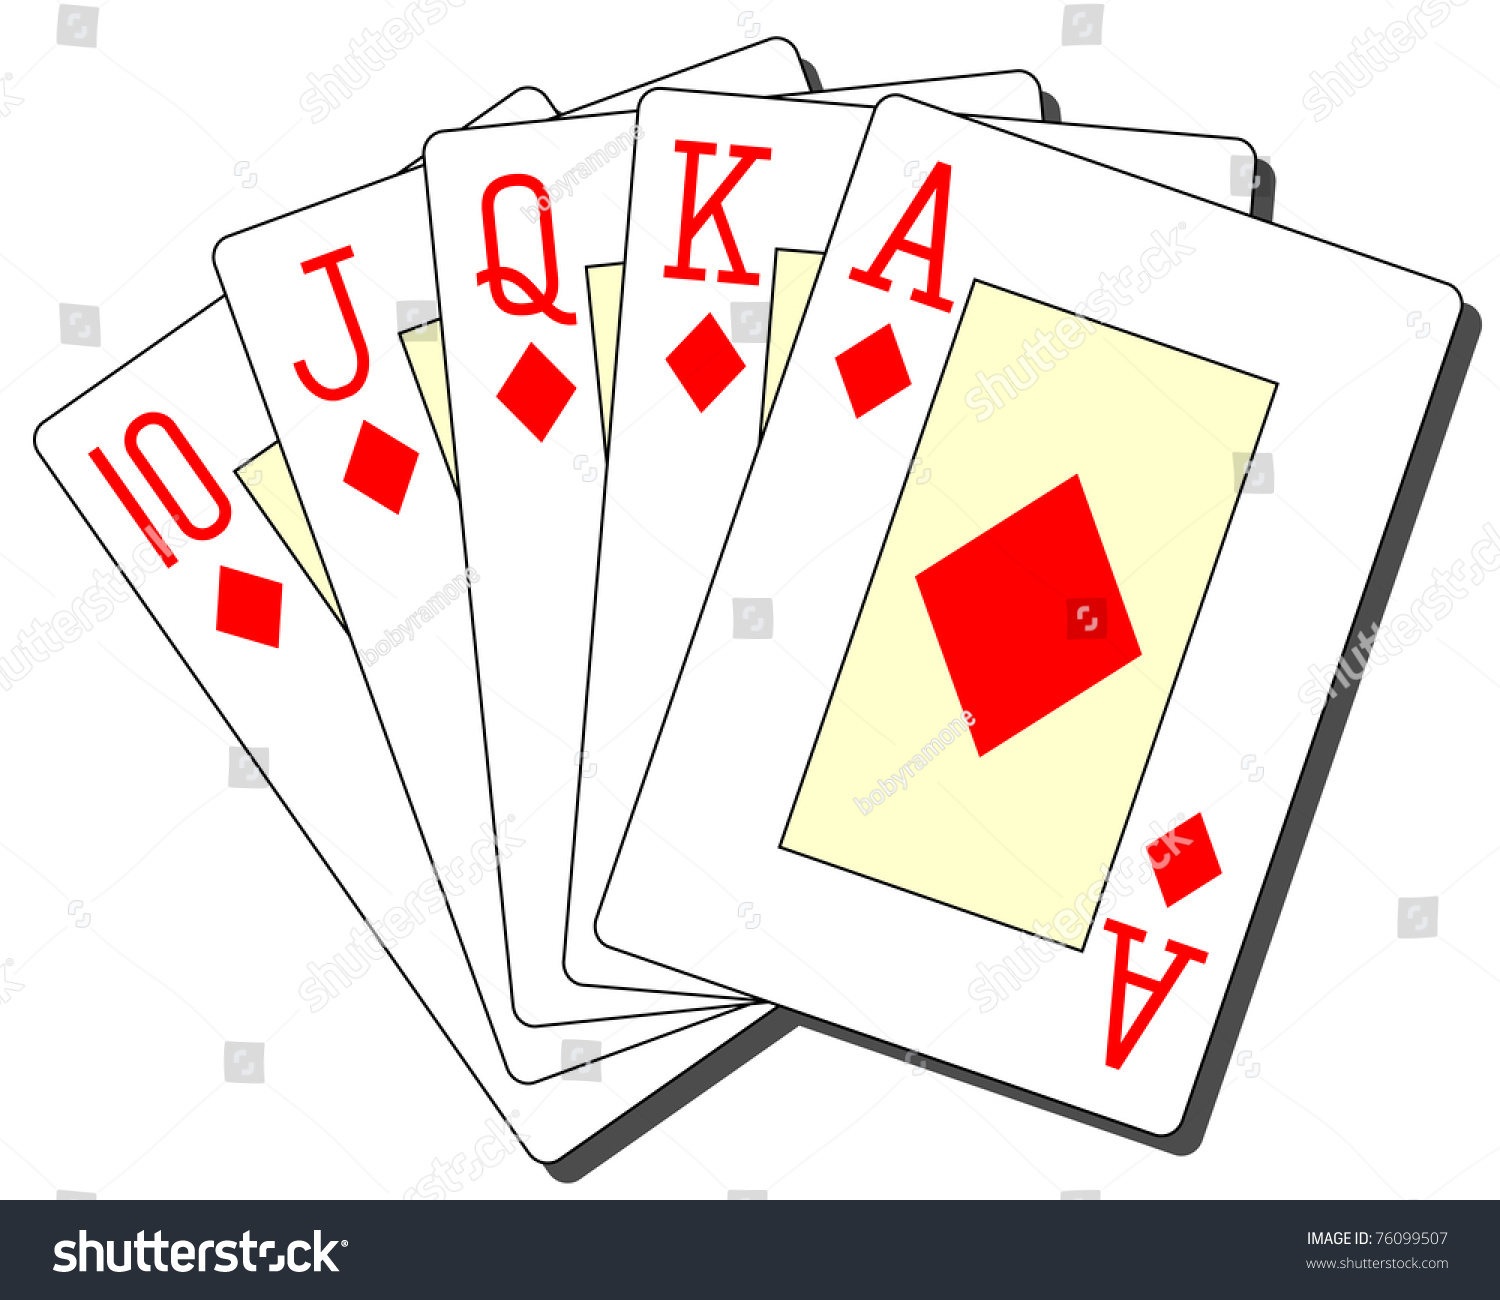 What is a royal flush in texas holdem